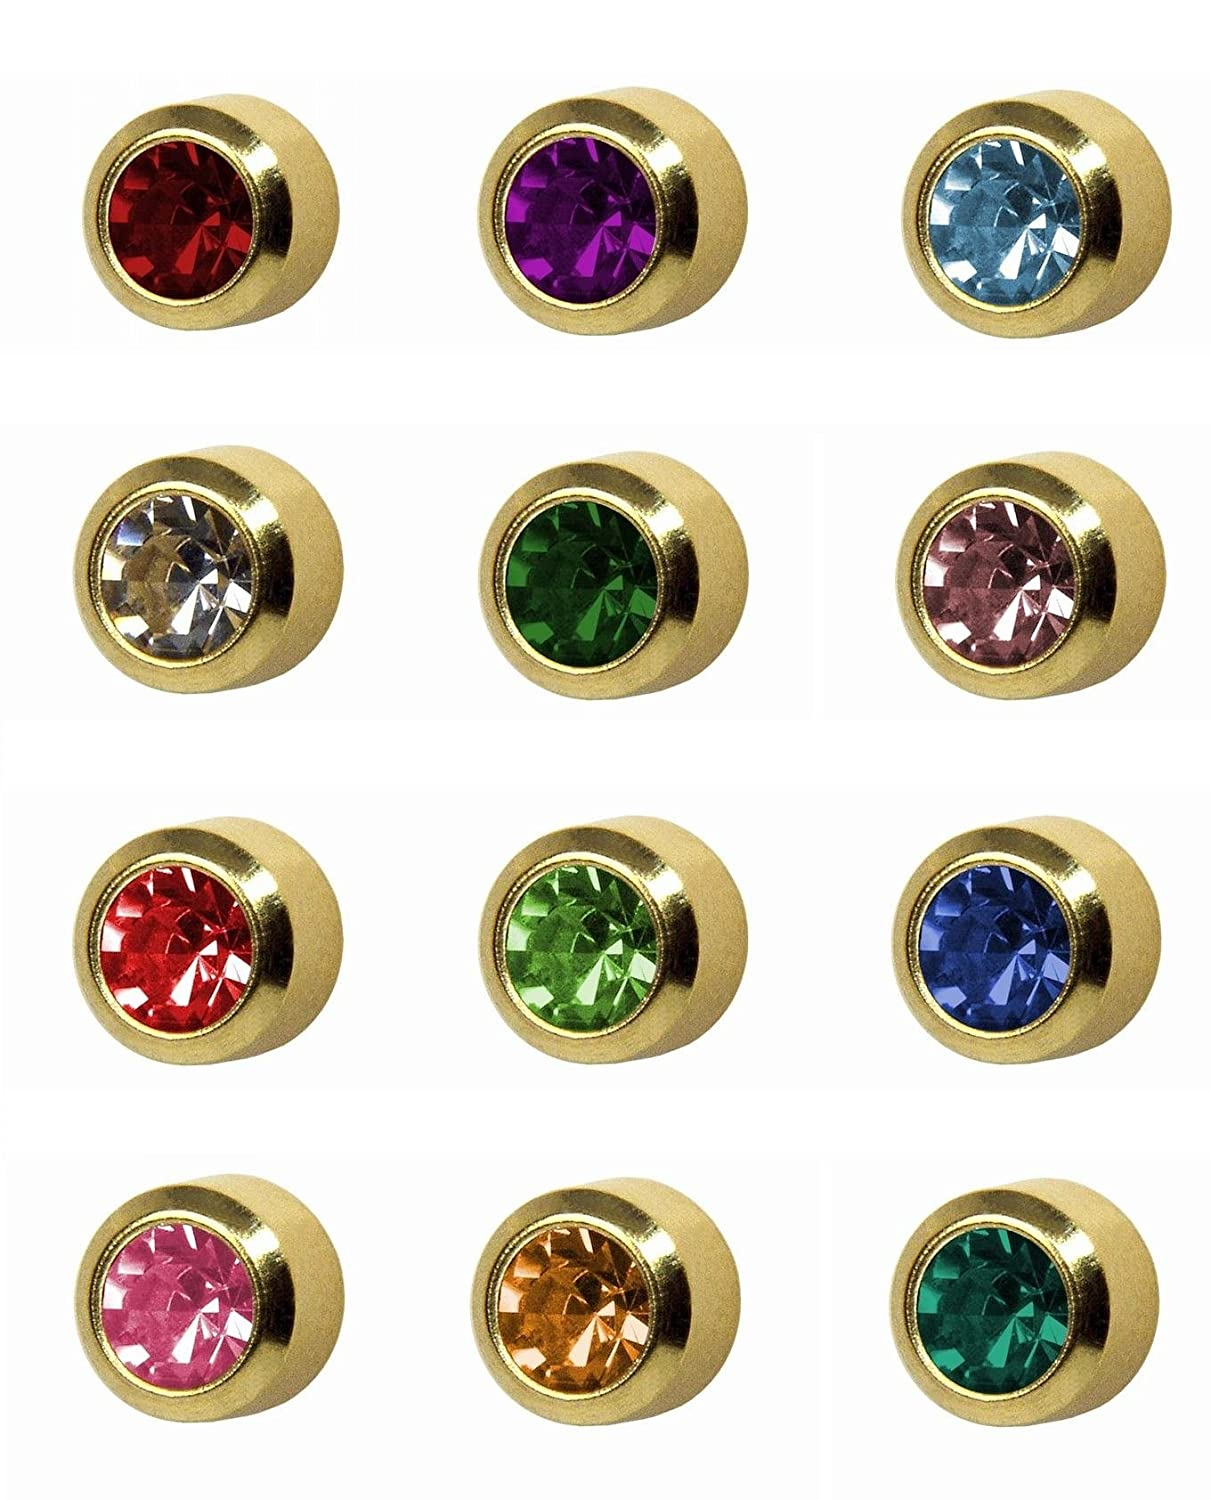 12 Pairs Of Studex Ear Piercing Birthstones Gold Plated Stud Earrings  Regular 4mm Bezel Setting